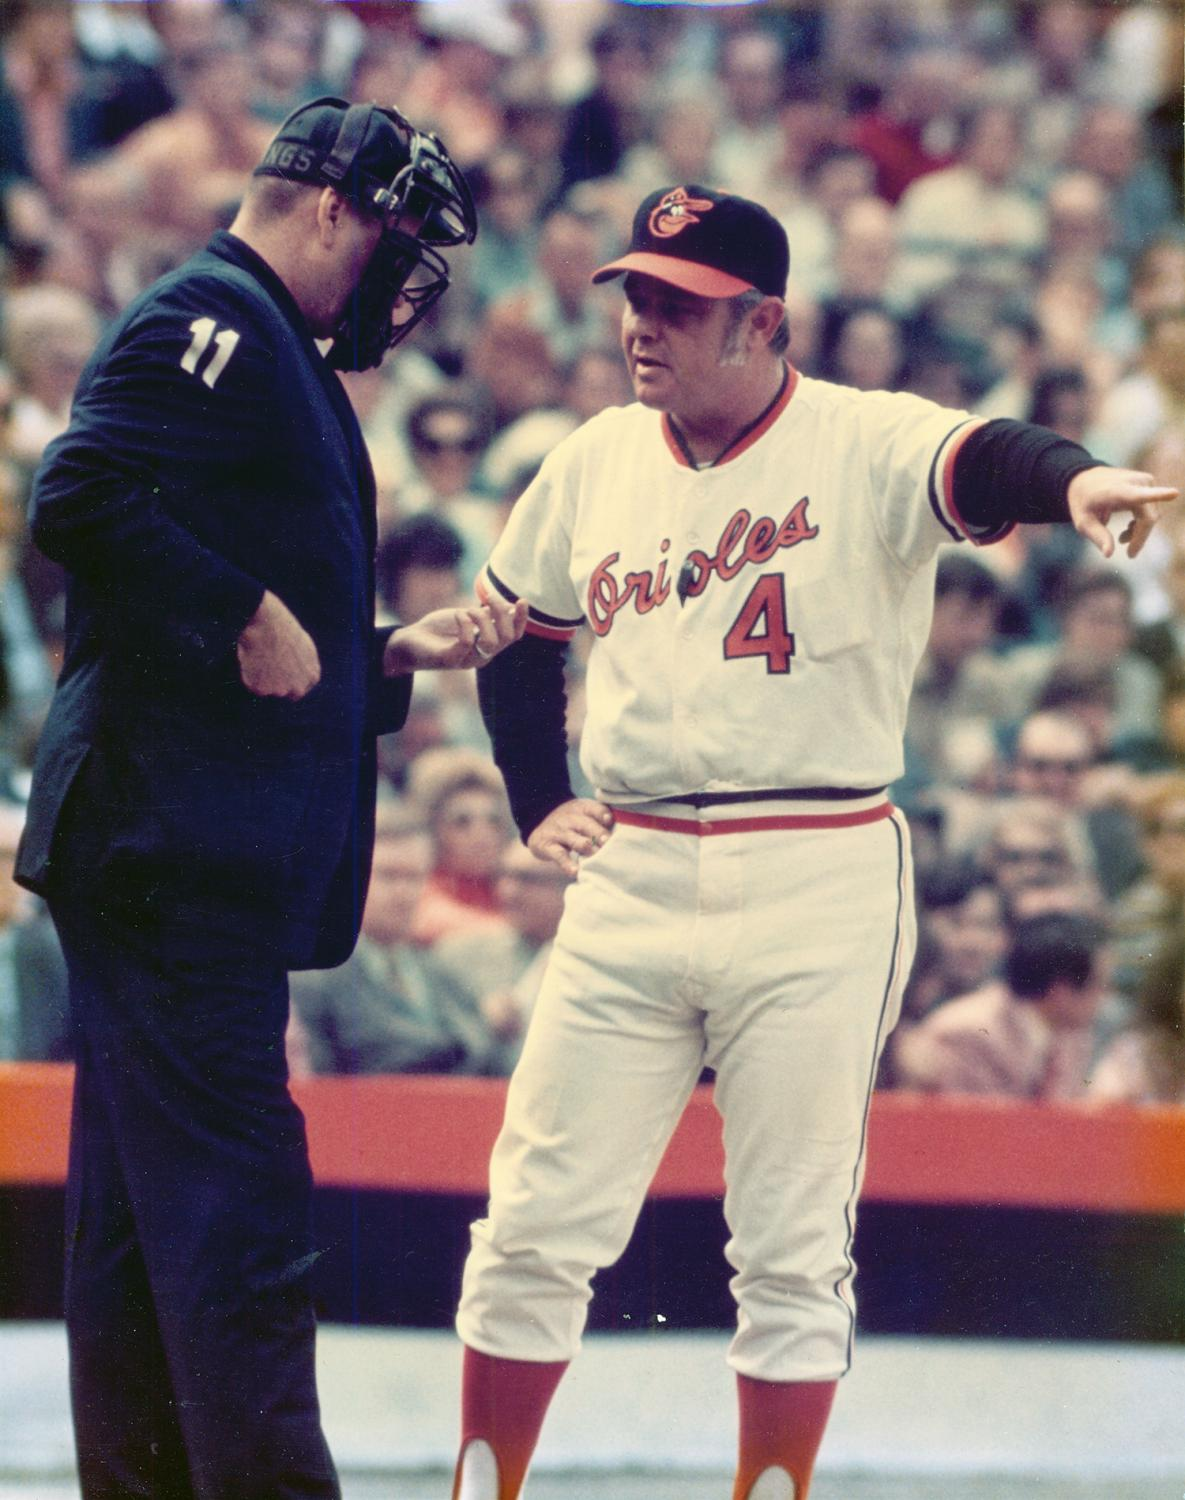 I hadn't seen this picture of Earl Weaver before where you can actually see his pack of cigarettes (his left, next to #4) in his special pocket sewn inside his jersey. @UniWatch #Orioles https://t.co/r3PrKcAdXp